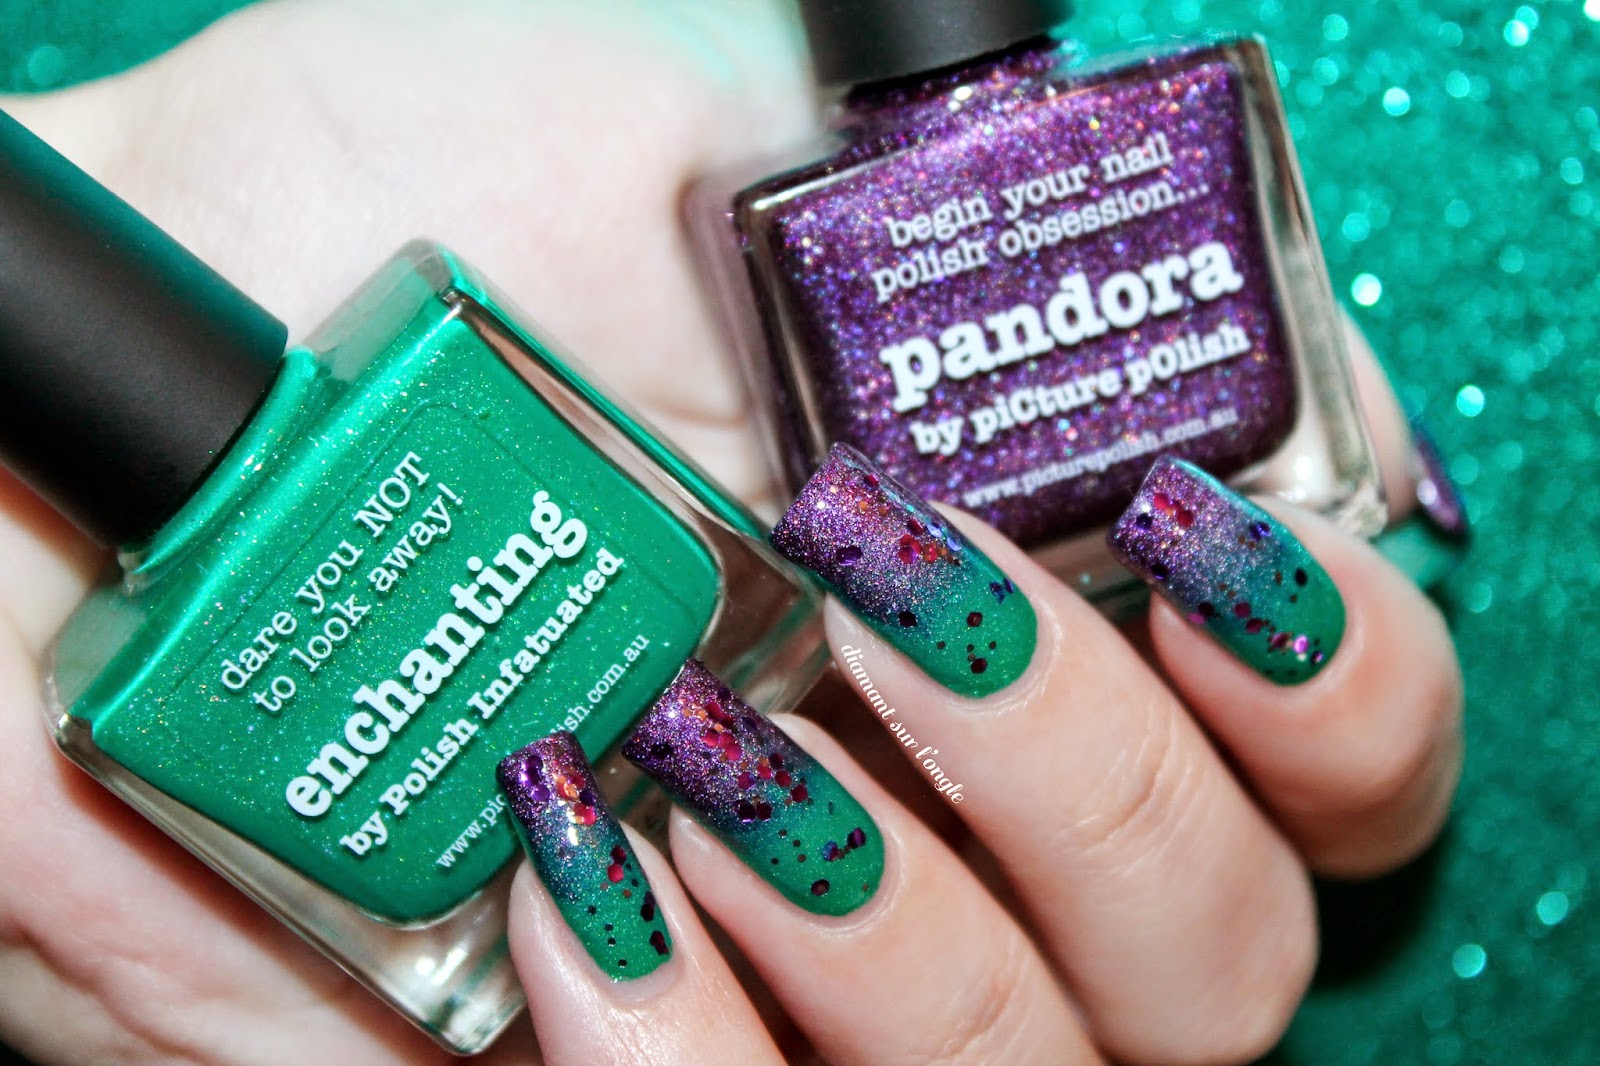 Enchanting and Pandora from Picture Polish